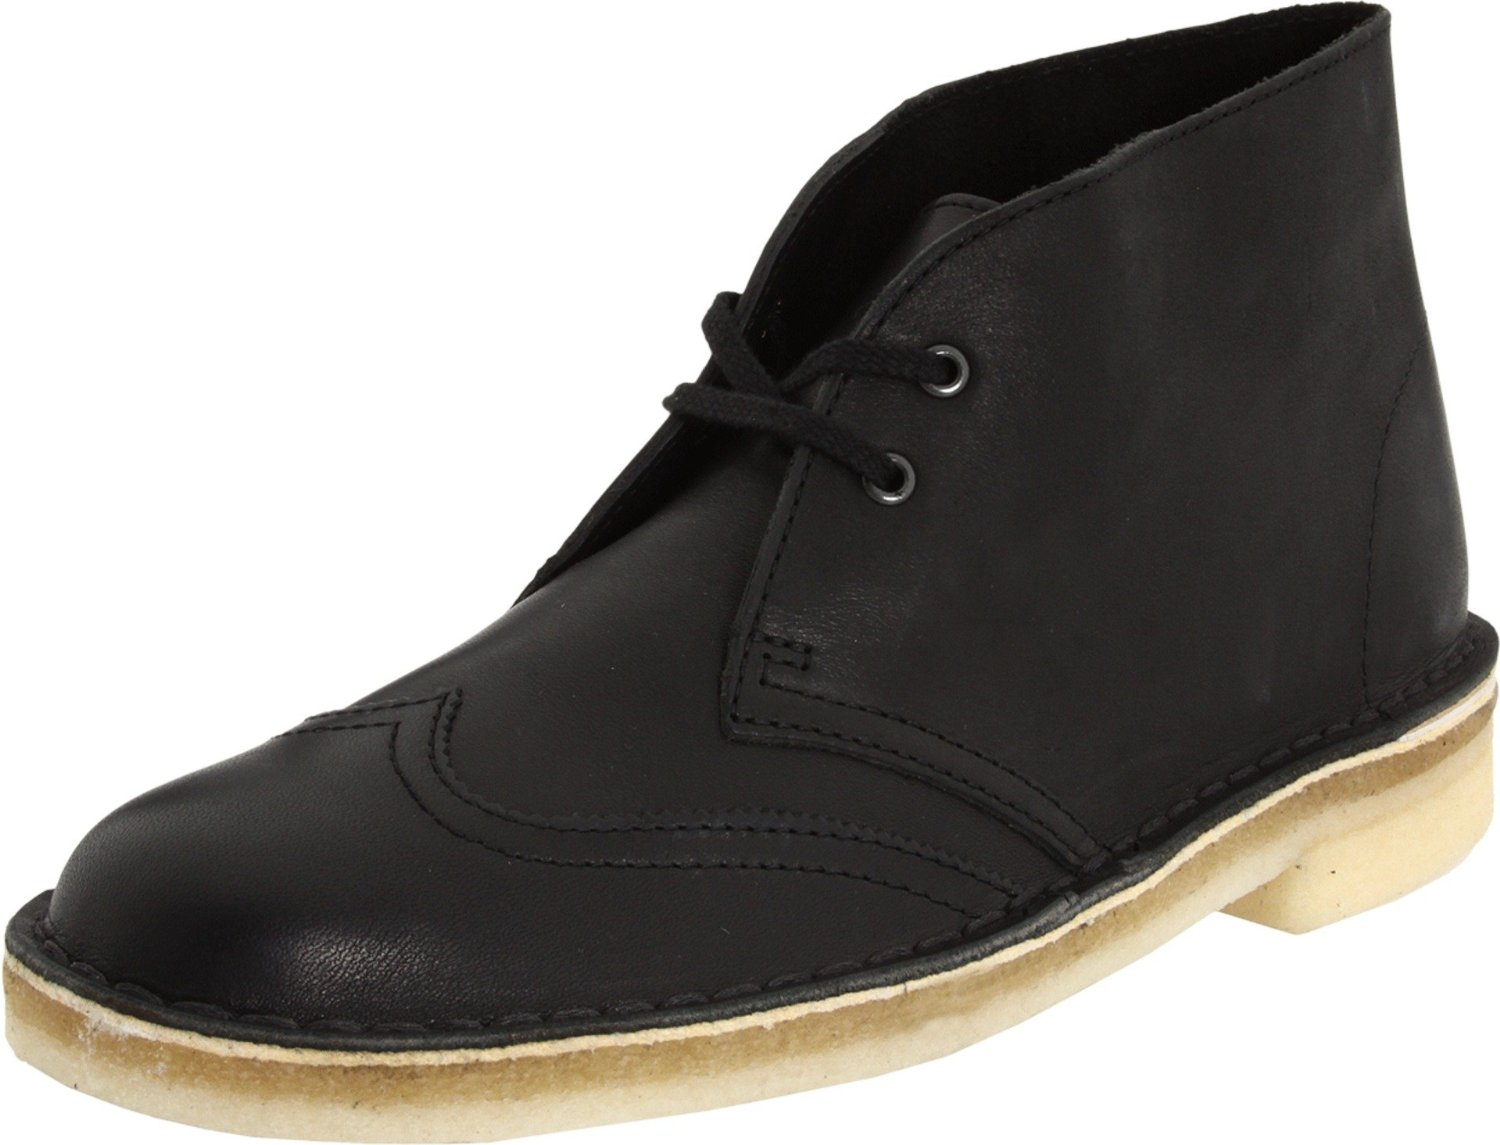 Beautiful Clarks Womens Desert Mali Boots